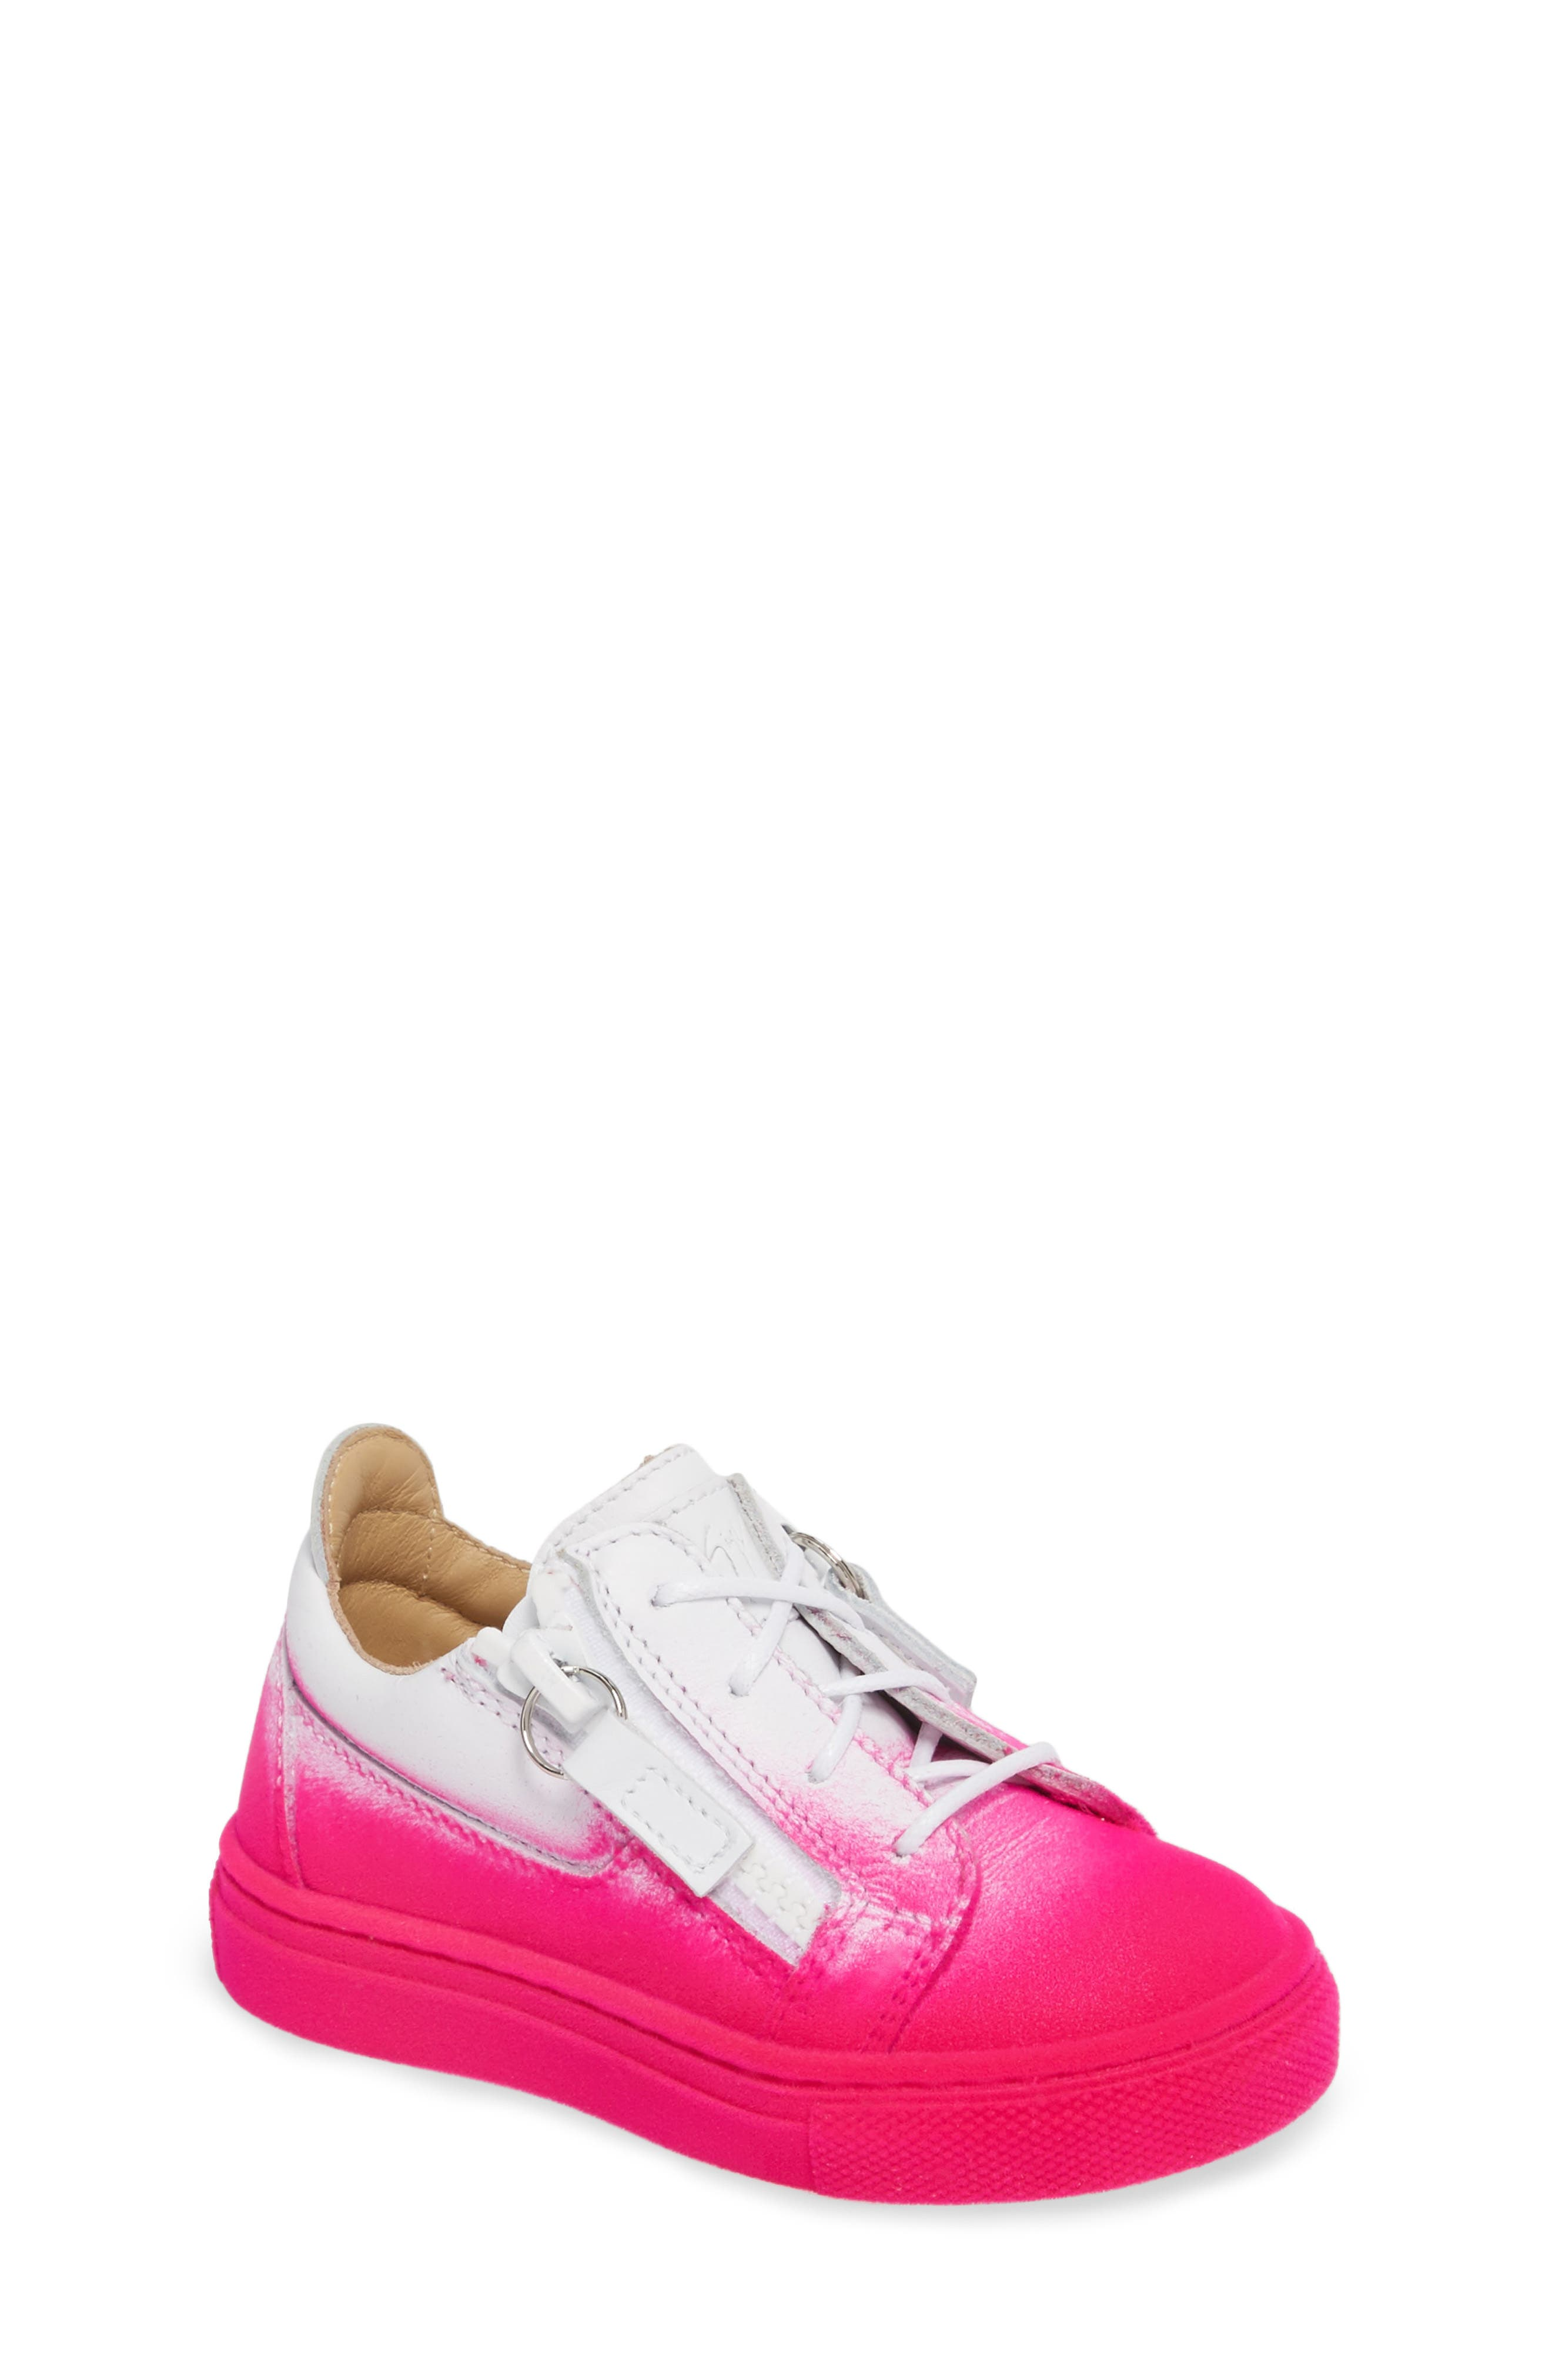 Alternate Image 1 Selected - Giuseppe Zanotti Smuggy Ombré Flocked Sneaker (Baby, Walker, Toddler & Little Kid)